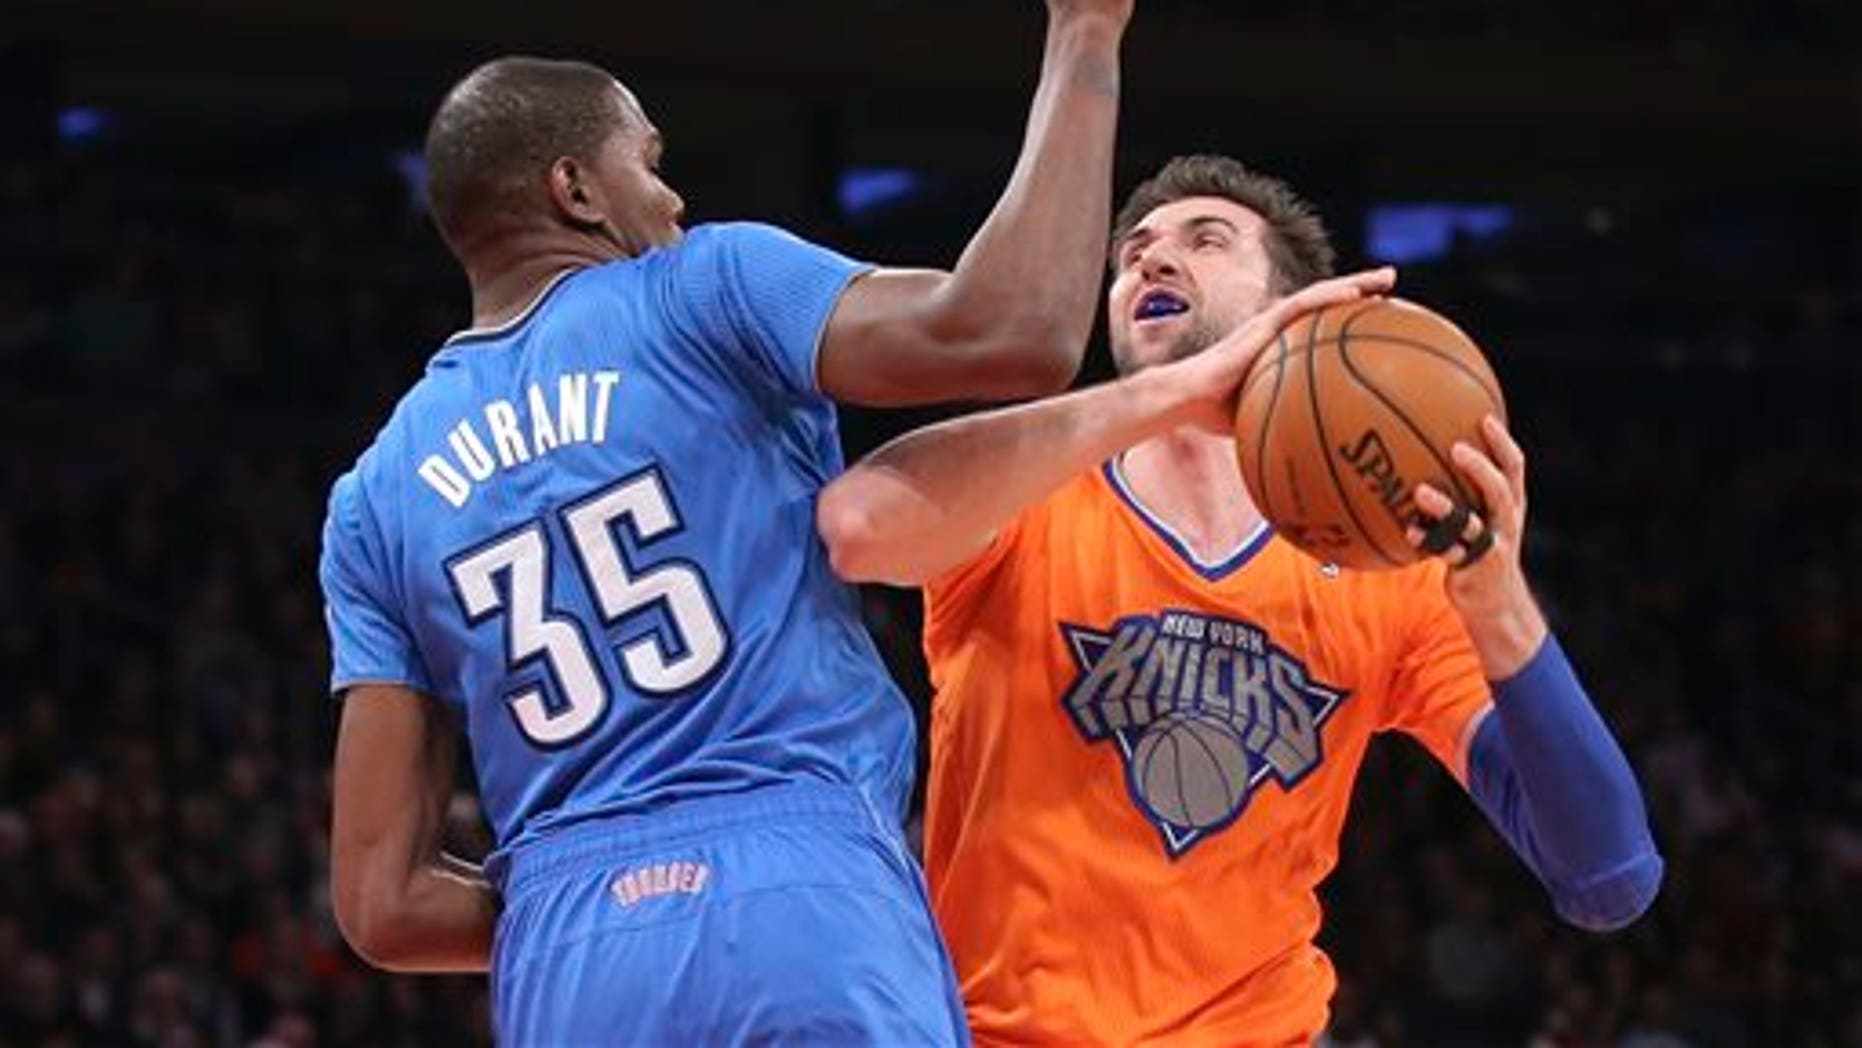 Knicks' Andrea Bargnani shoots against Oklahoma City Thunder's Kevin Durant at Madison Square Garden, Wednesday, Dec. 25, 2013, in New York.